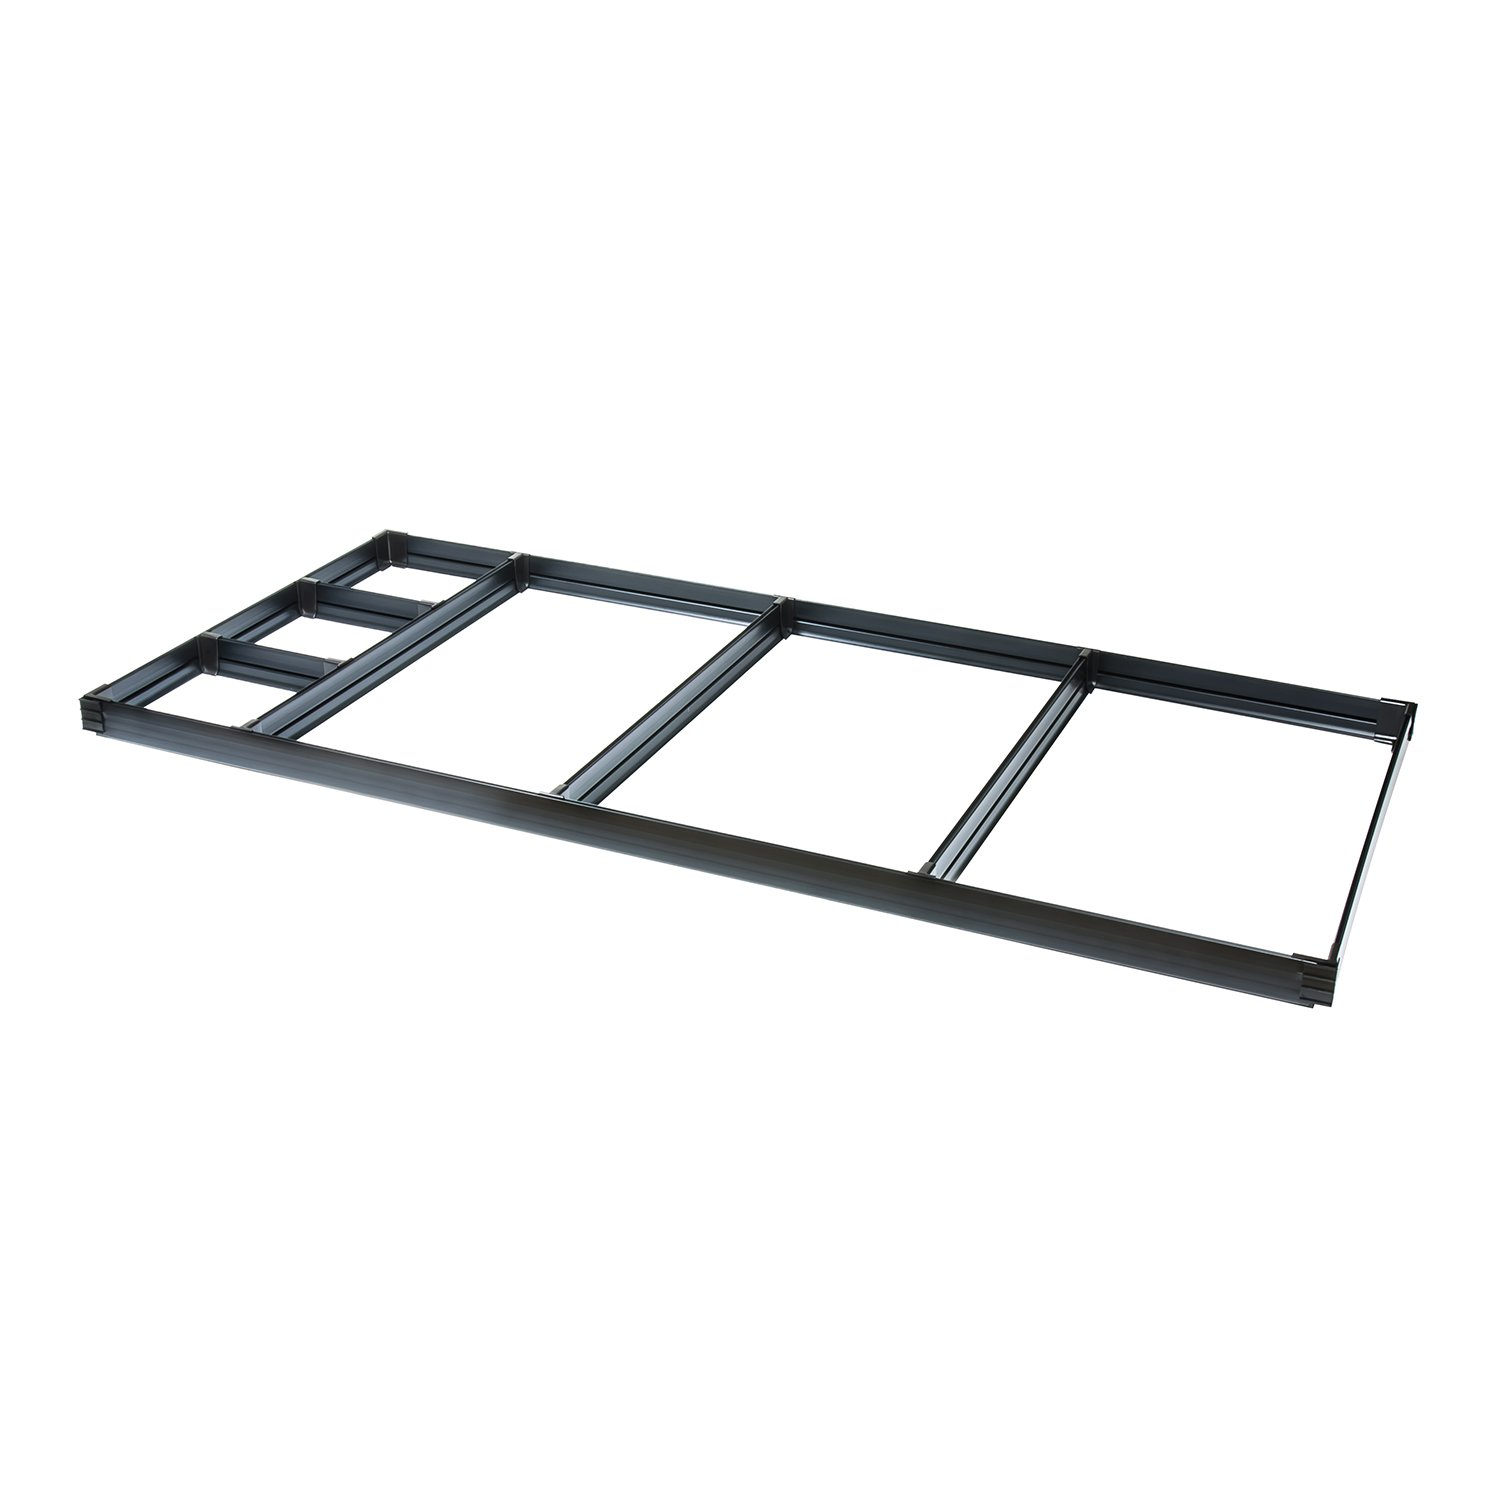 Ernst Manufacturing 1.2-Inch Drawer Divider System, 6-Compartments